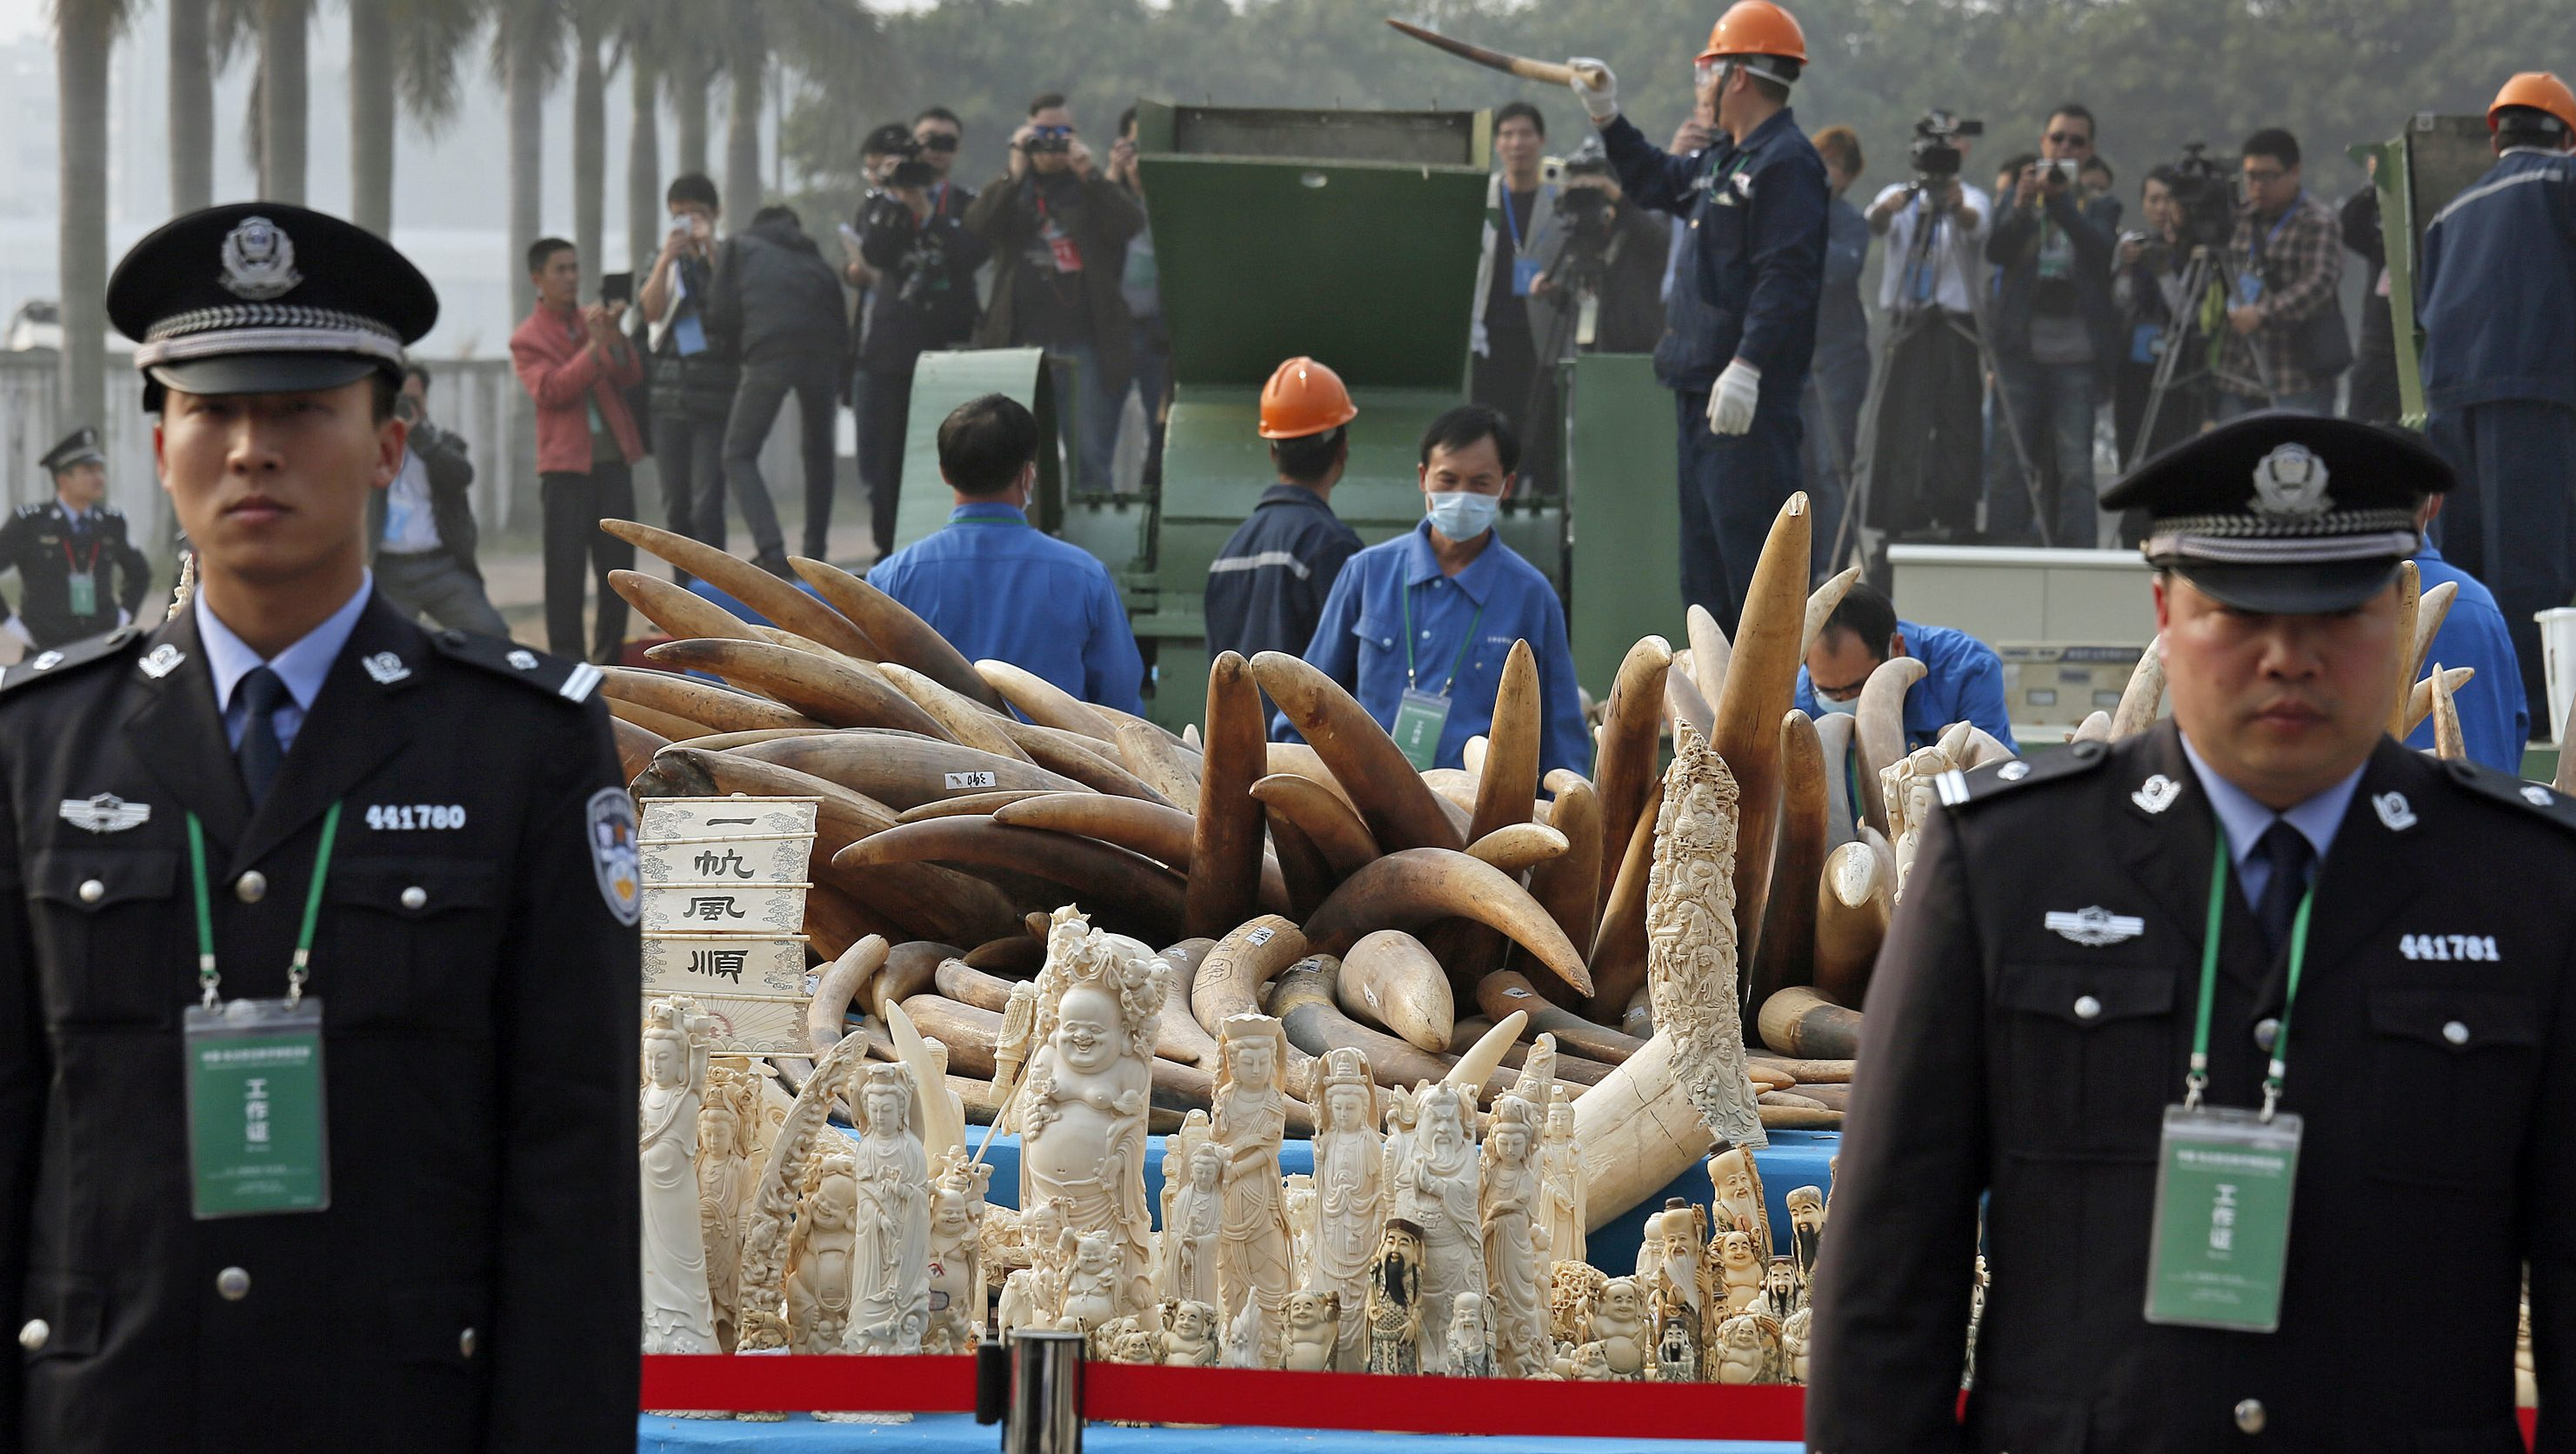 Customs officers stand guard in front of some illegal ivory during destruction in Dongguan, southern Guangdong province, China Monday, Jan. 6, 2014. China destroyed about 6 tons of illegal ivory from its stockpile on Monday, in an unprecedented move wildlife groups say shows growing concern about the black market trade by authorities in the world's biggest market for elephant tusks. (AP Photo/Vincent Yu)